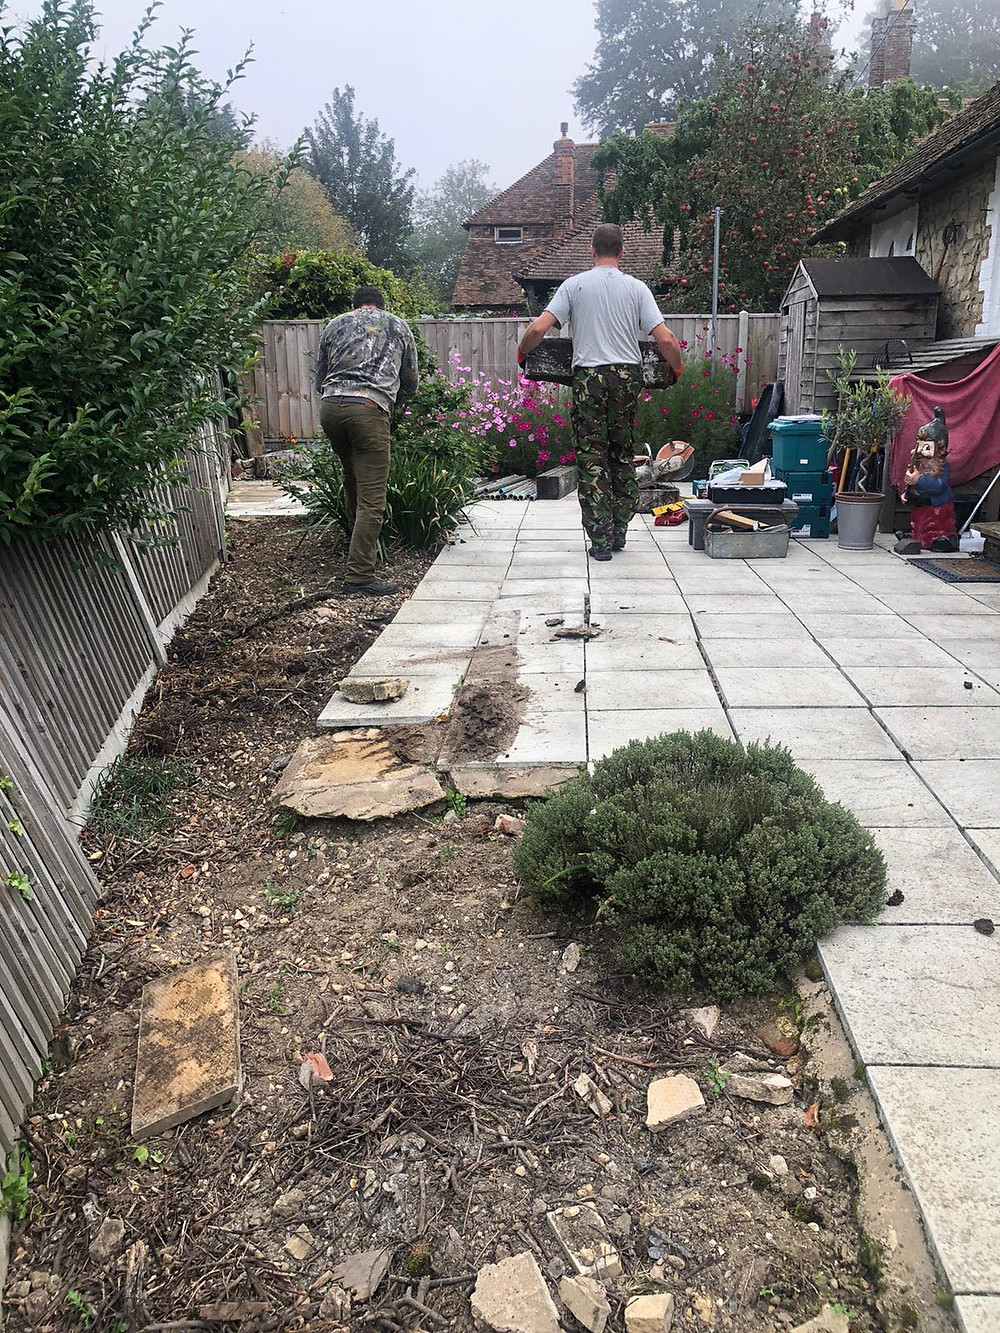 The existing patio was in a very poor condition and the sub-base had subsided